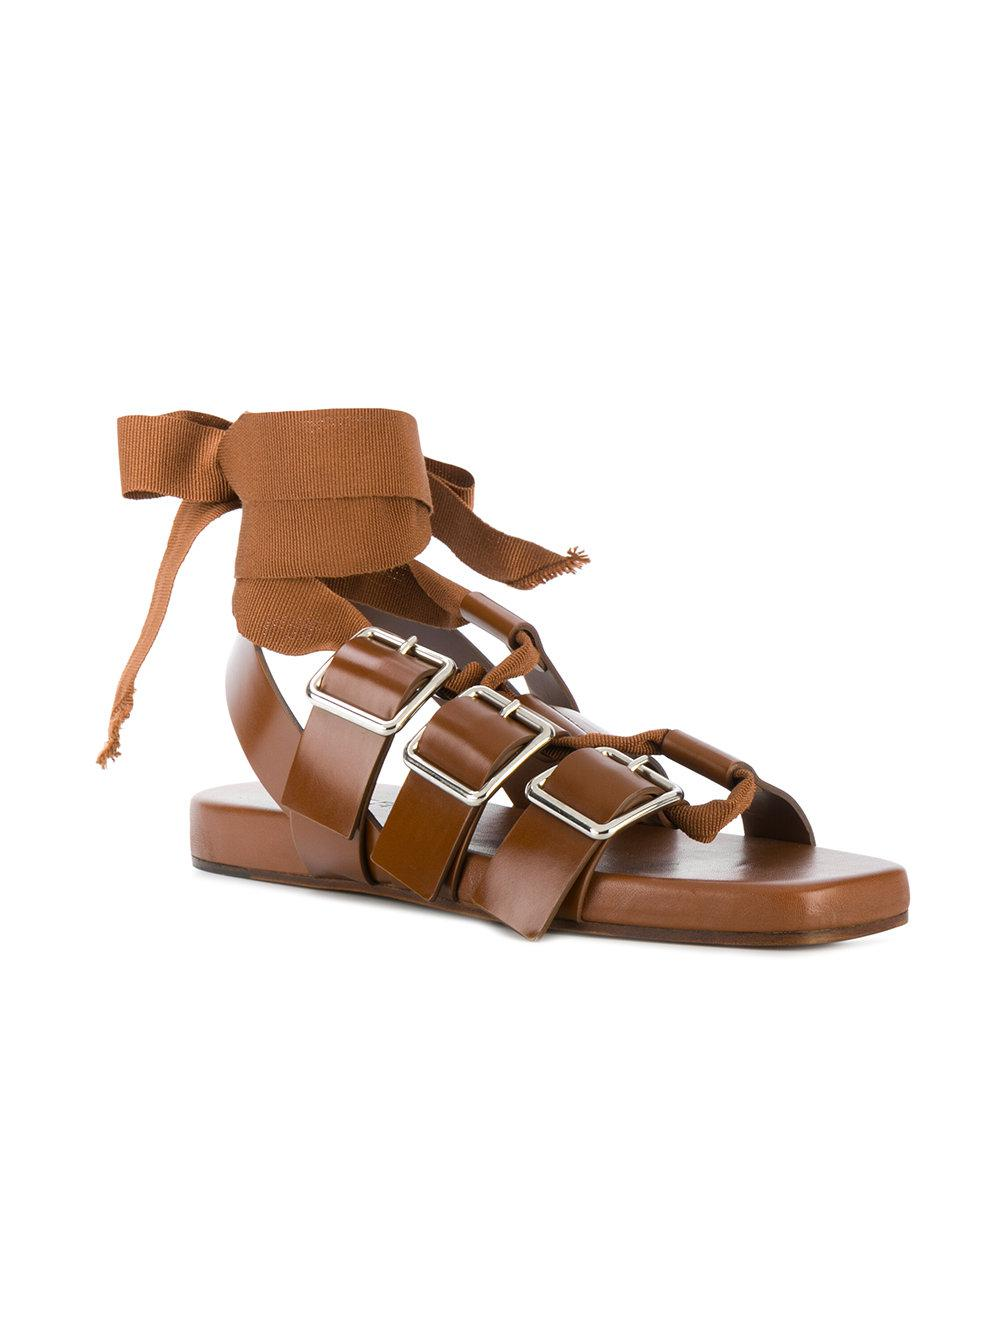 Jil Sander Antick buckled sandals Release Dates Authentic Sale Popular Wholesale Price Cheap Sale 2018 Free Shipping Fashion Style qMPgd8